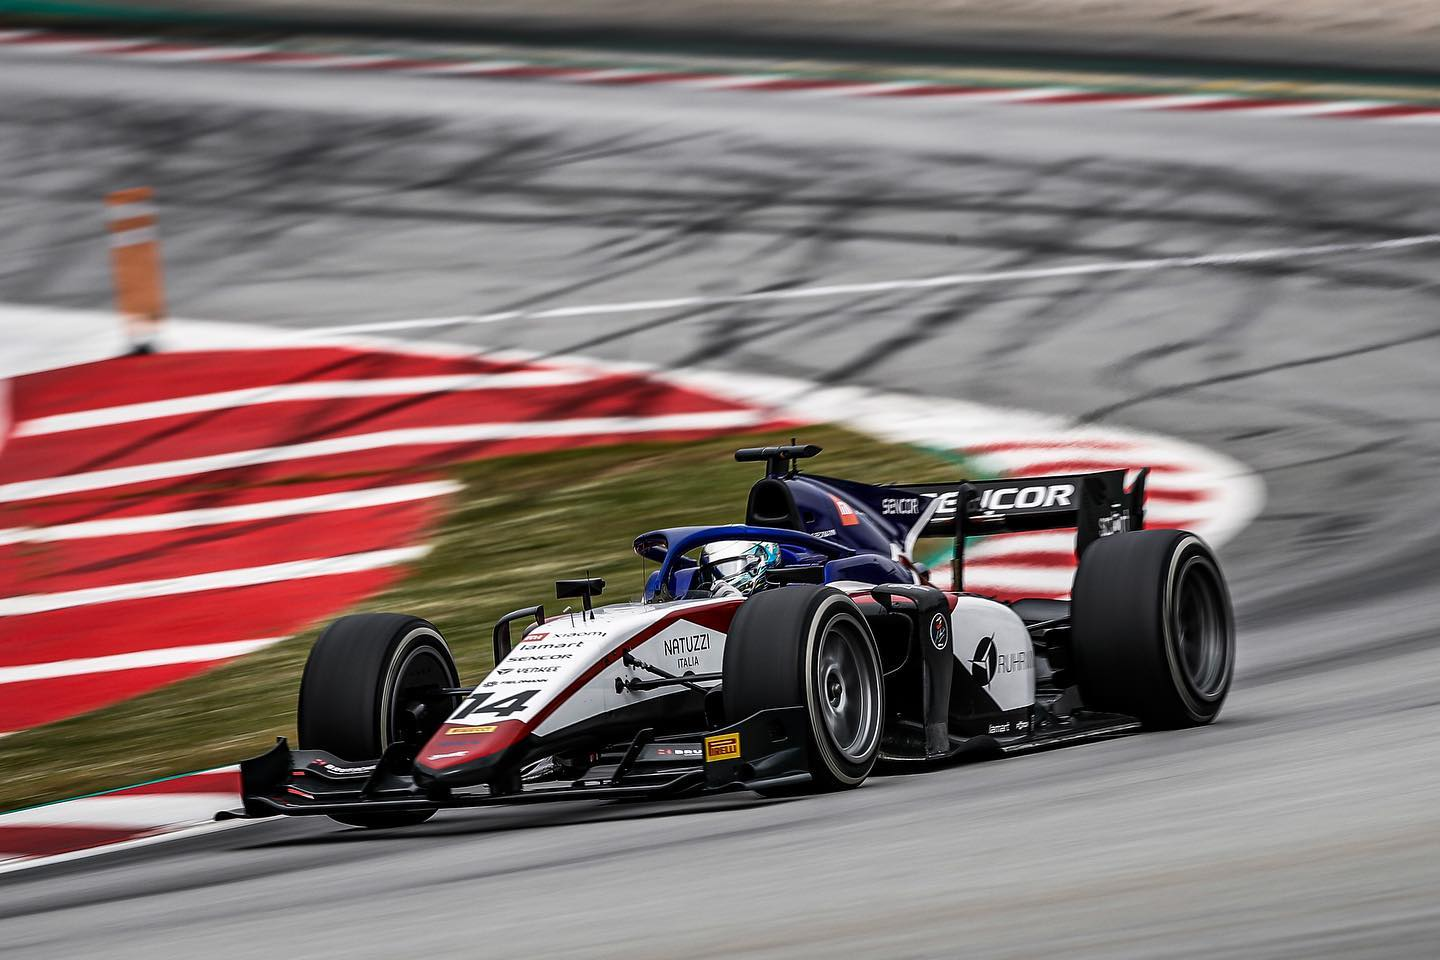 F3: Logan Sargeant ed Enzo Fittipaldi con Charouz Racing System